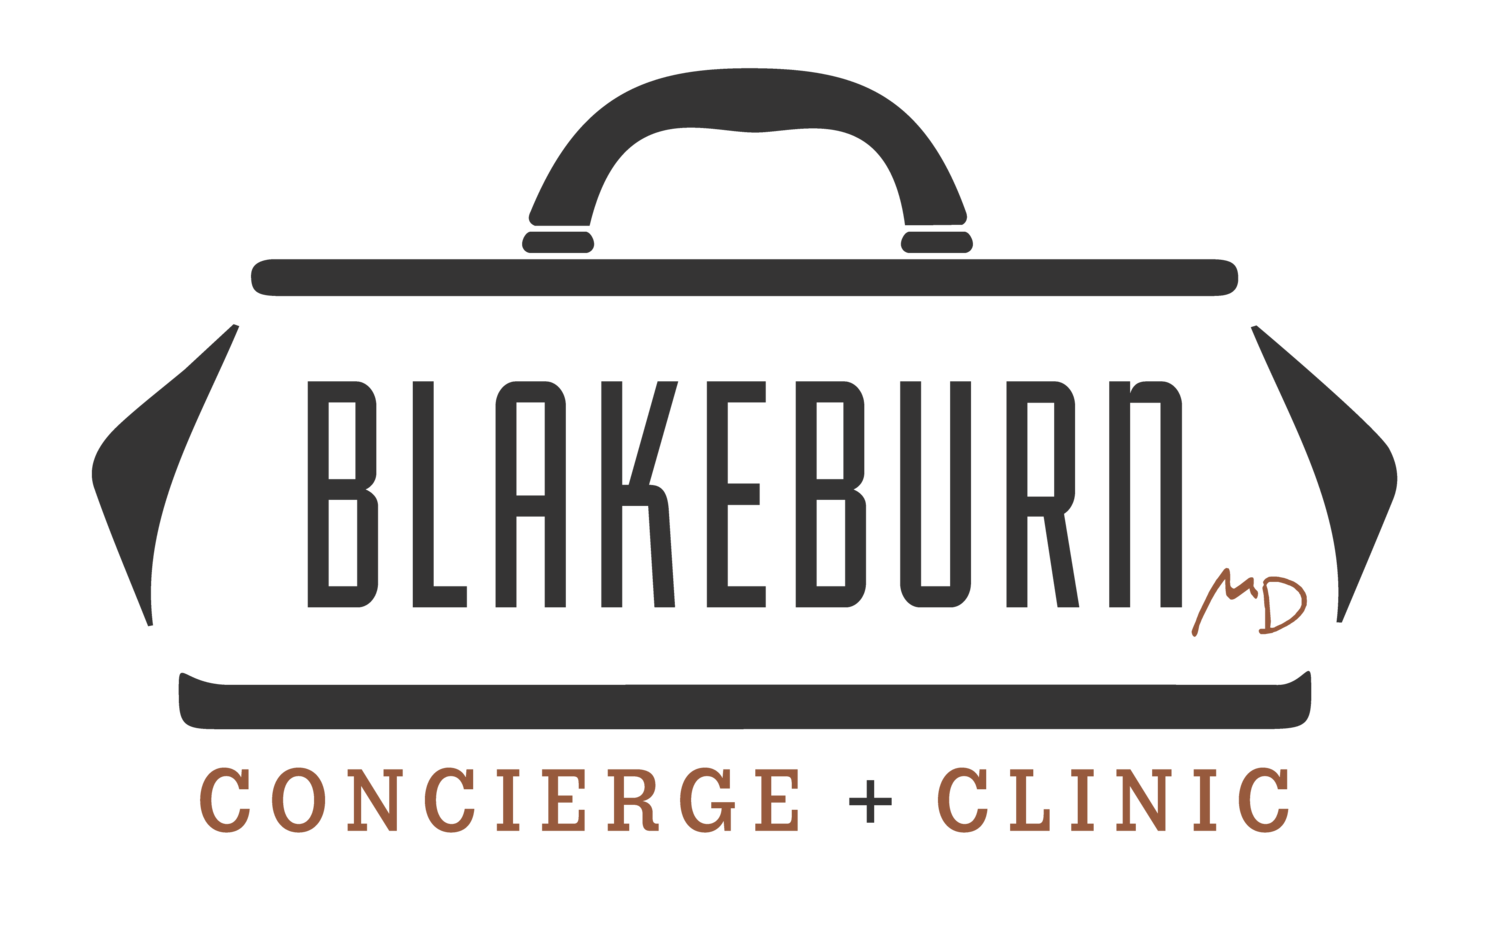 The Blakeburn Clinic